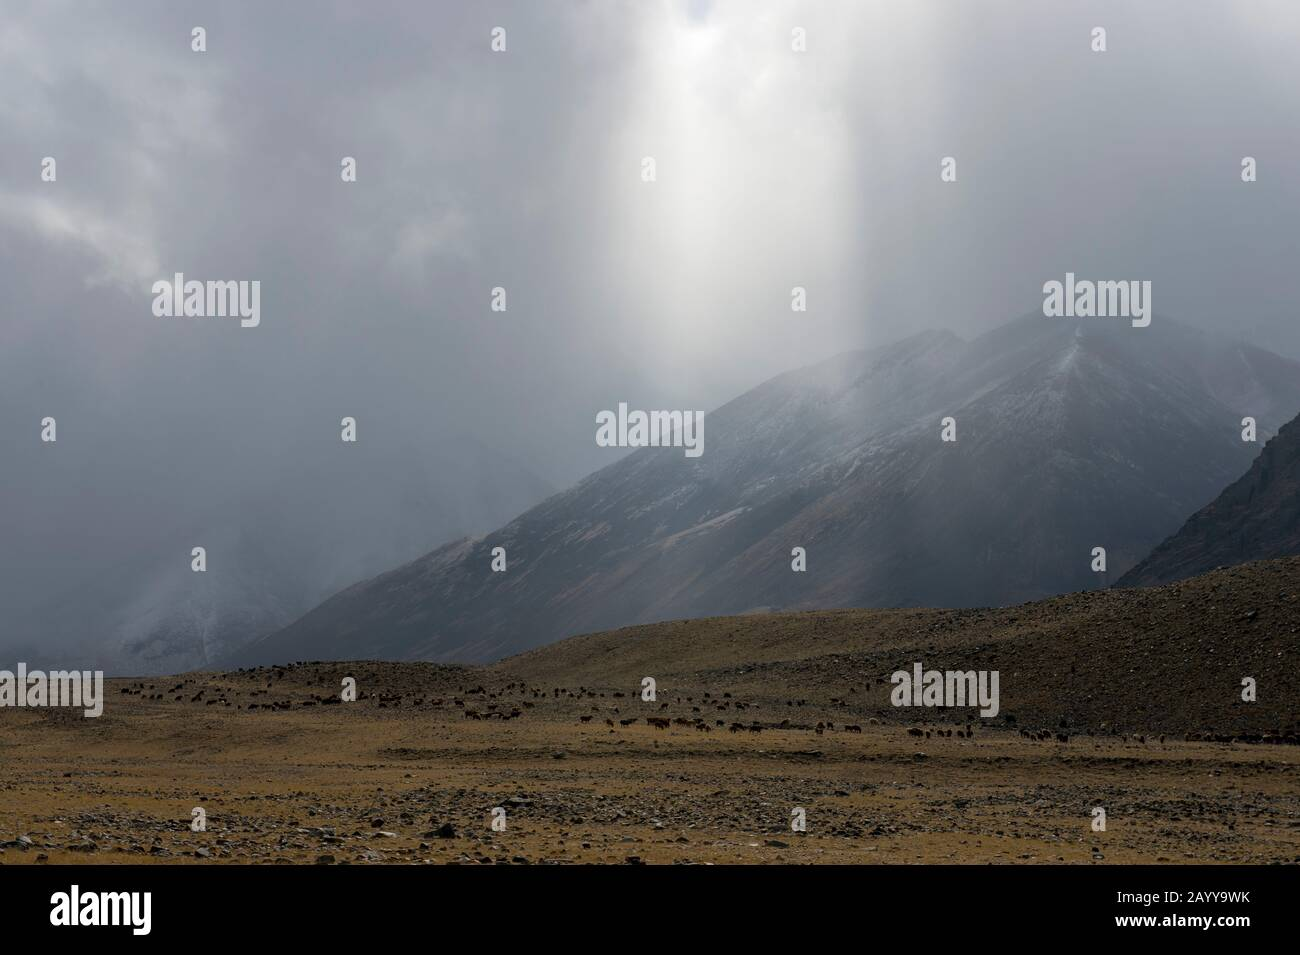 Sheep and goats grazing during snow and rainfall in the Hatuugeen River Valley in the Altai Mountains in the Bayan-Ulgii Province in western Mongolia. Stock Photo